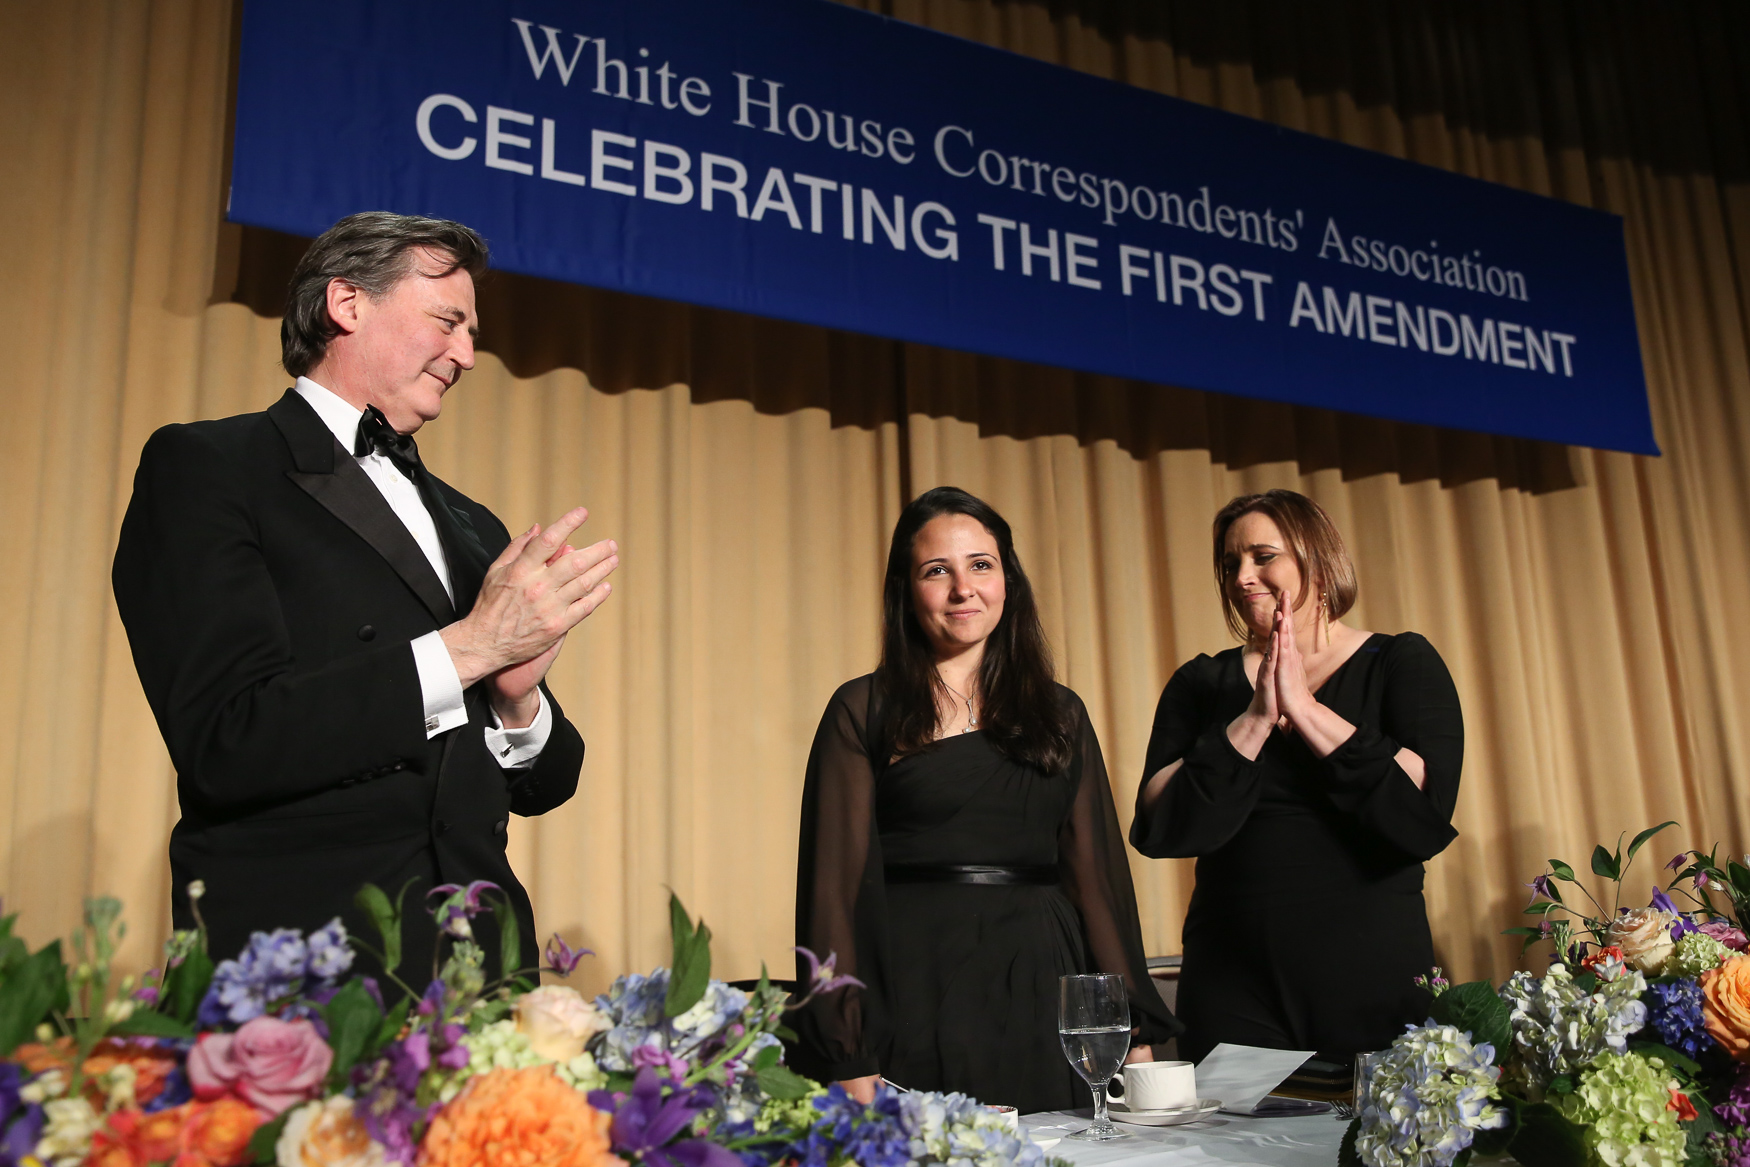 Human rights activist Aya Hijazi was honored at the dinner. (Amanda Andrade-Rhoades/DC Refined)